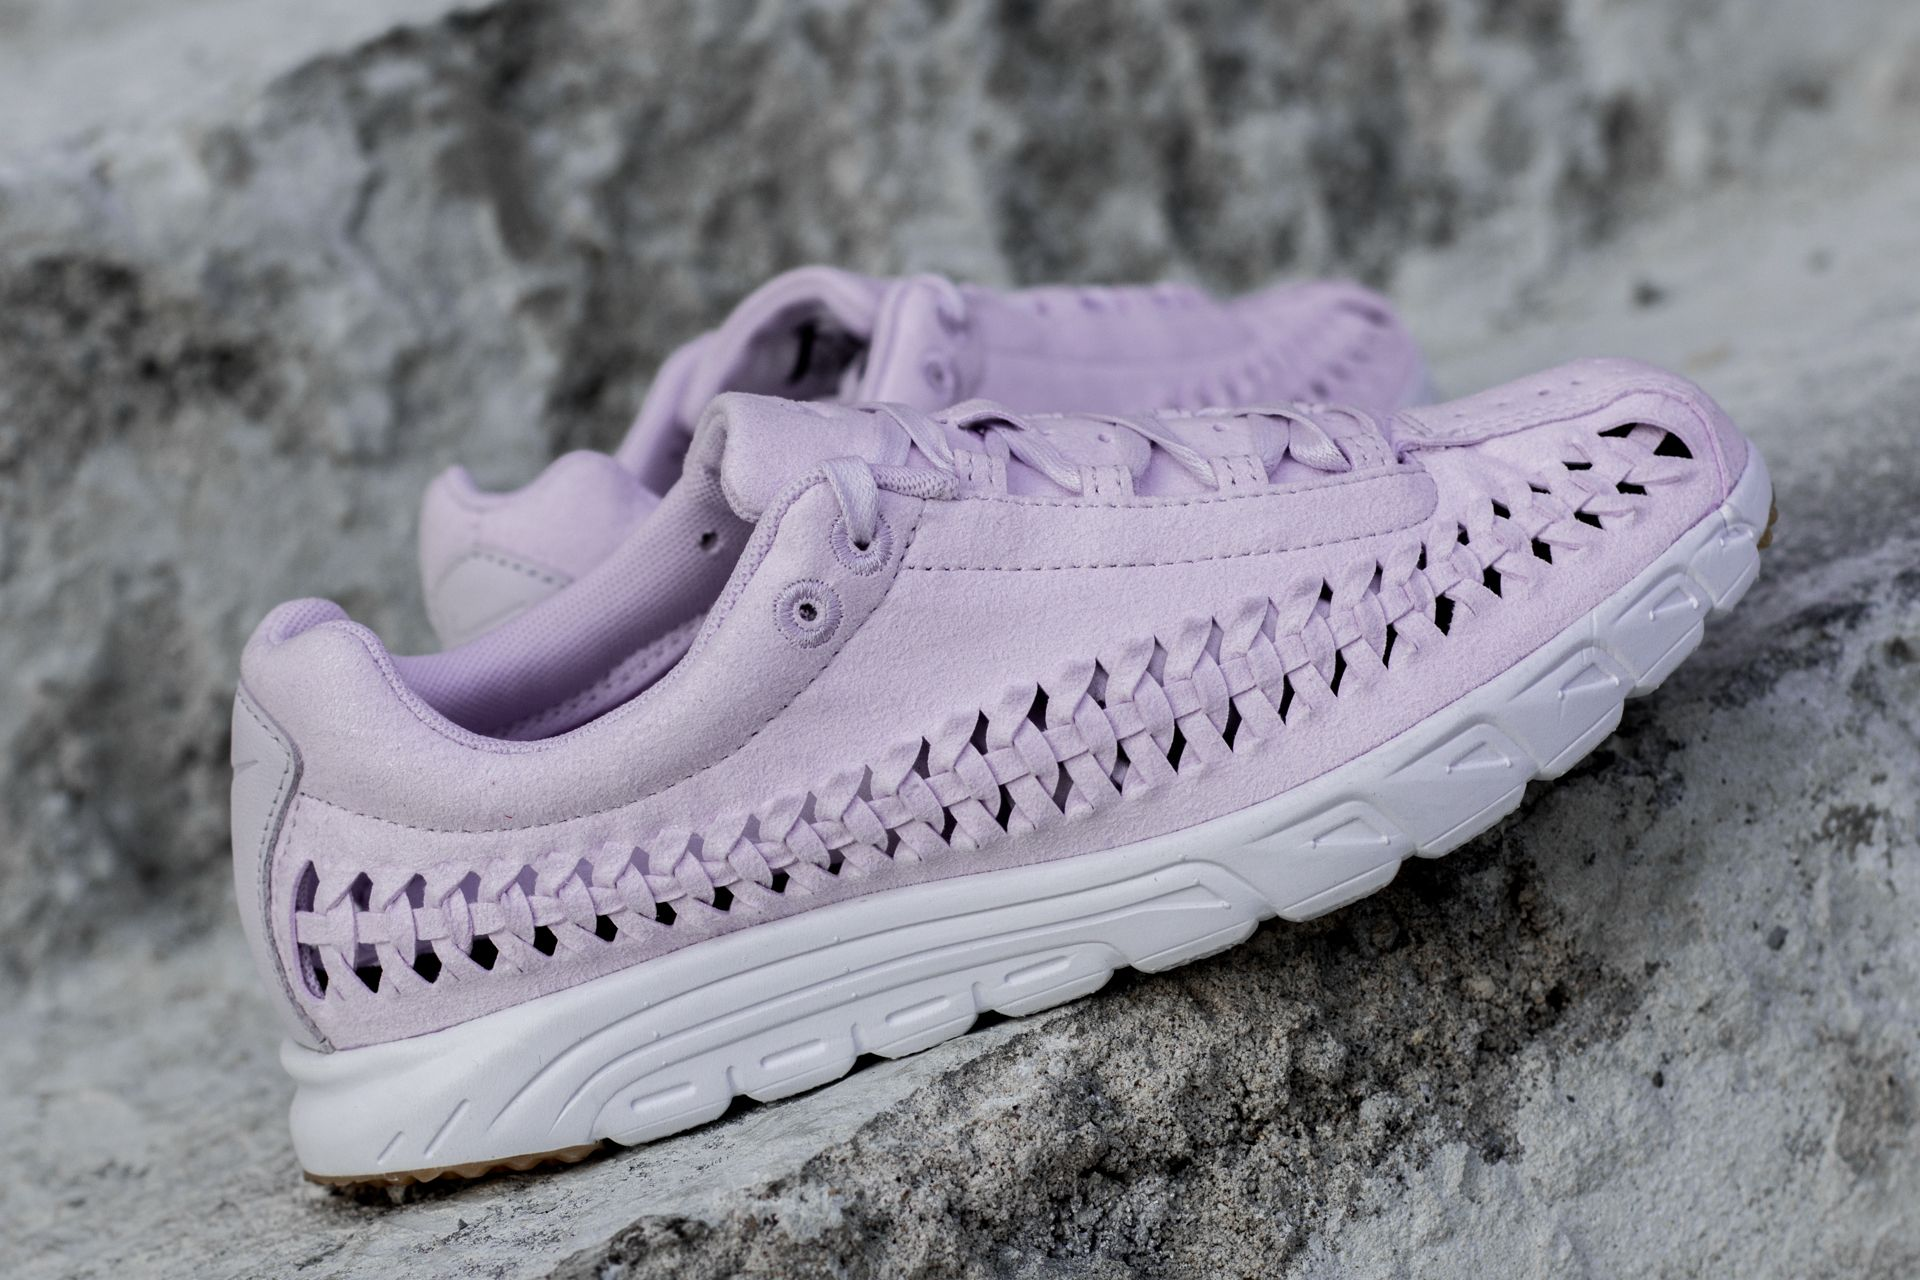 daf234938f0 Nike Wmns Mayfly Woven QS Pastel Pack 7bda97b  Nike Wmns Mayfly Woven QS  Barely Grape Barely Grape at a great price 8e68dfc £63 . ...